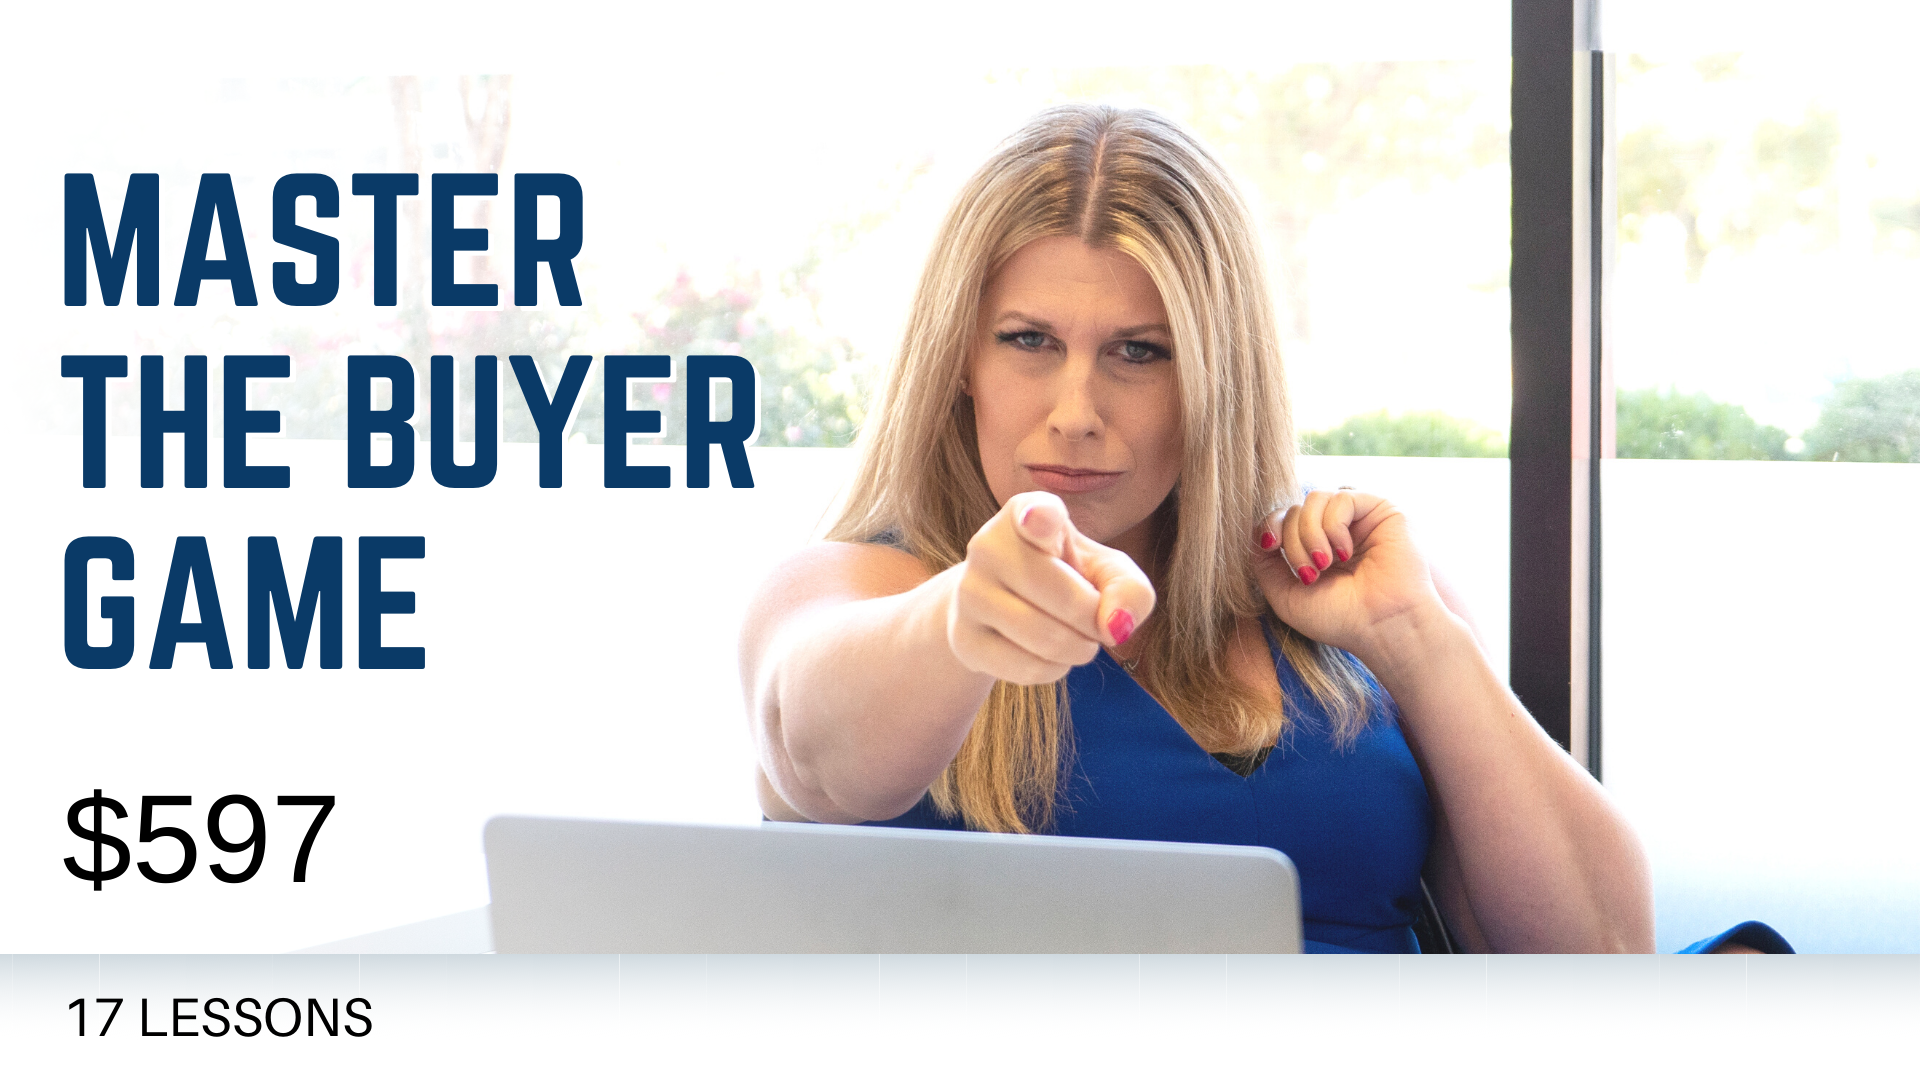 Master The Buyer Game